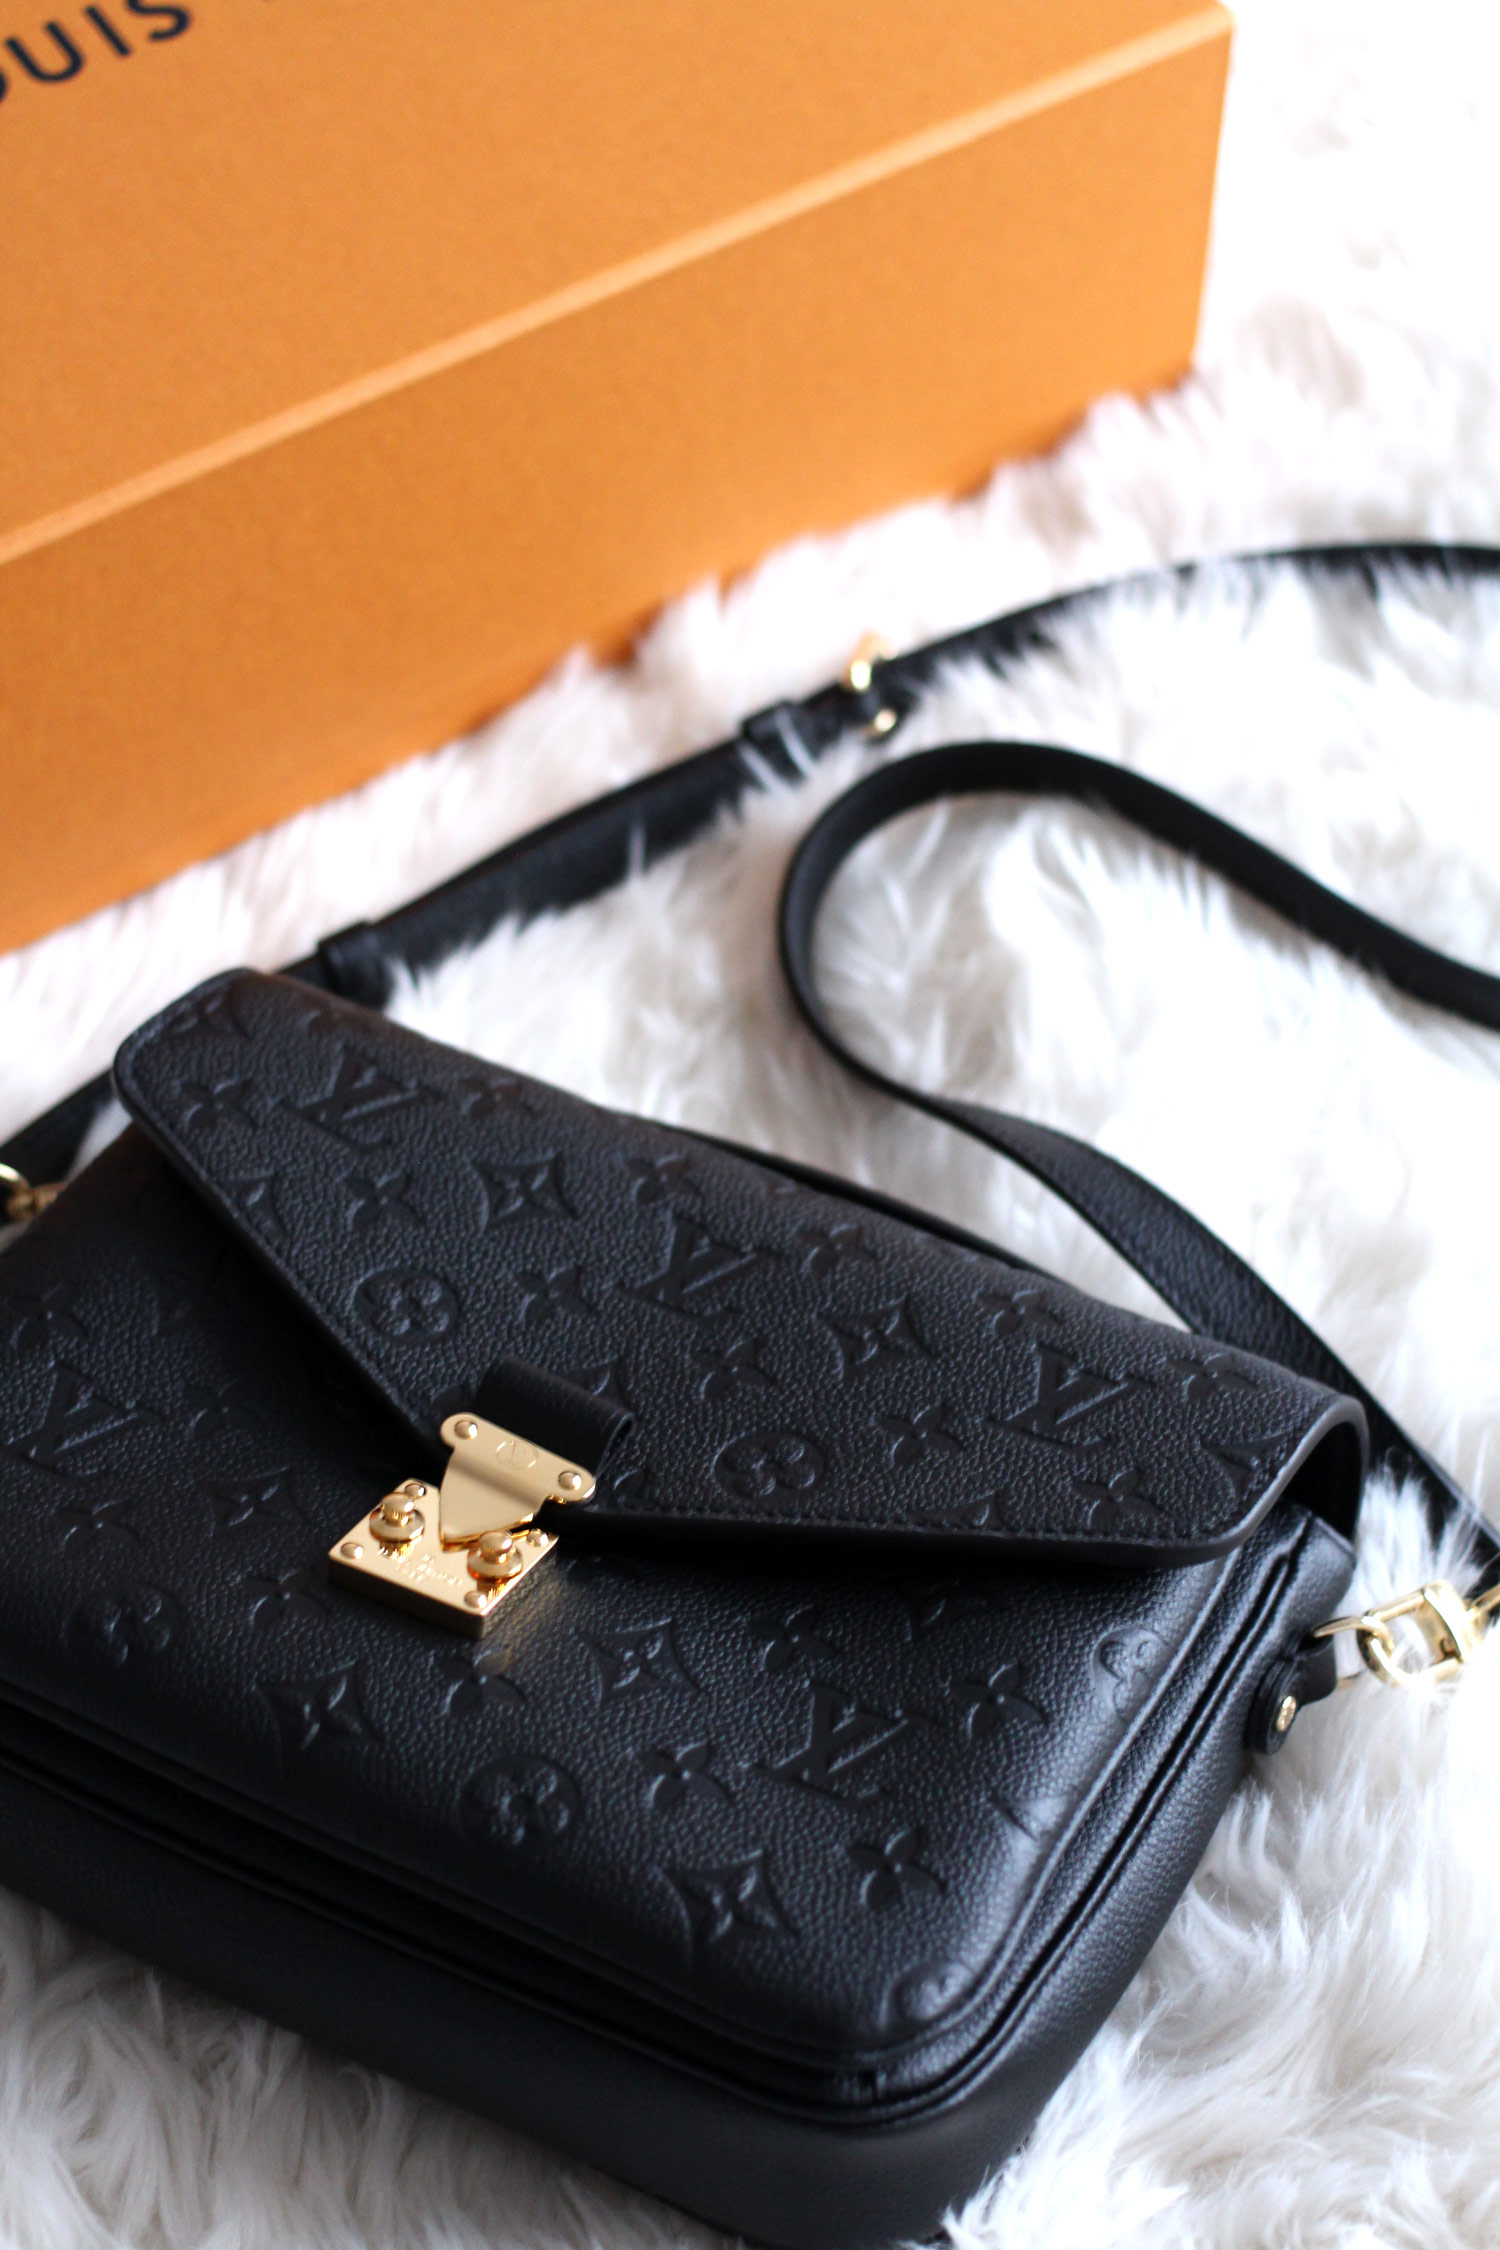 louis-vuitton-pochette-metis-Monogram-Empreinte-Leather-black-bag-review-5